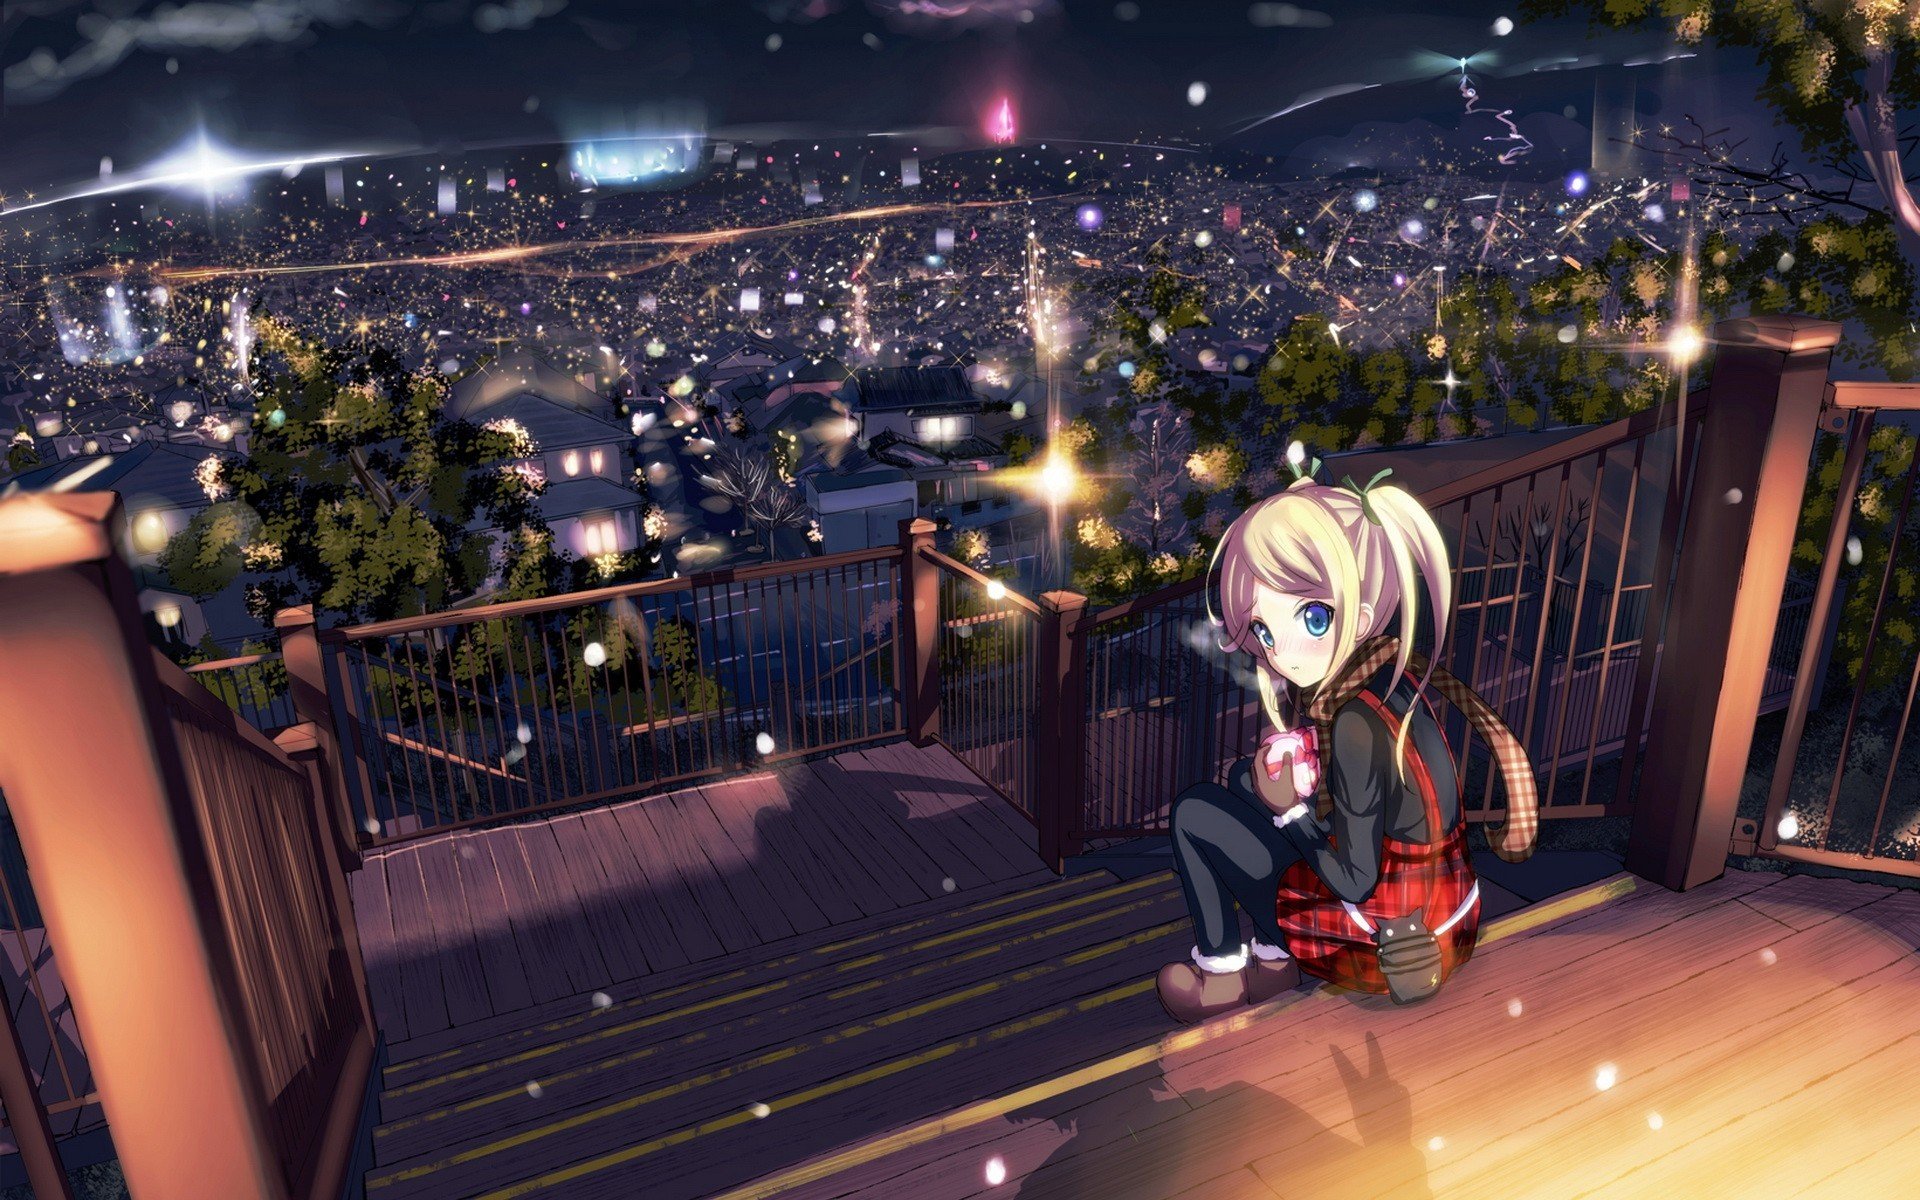 Awesome Anime Scenery Wallpaper 7986